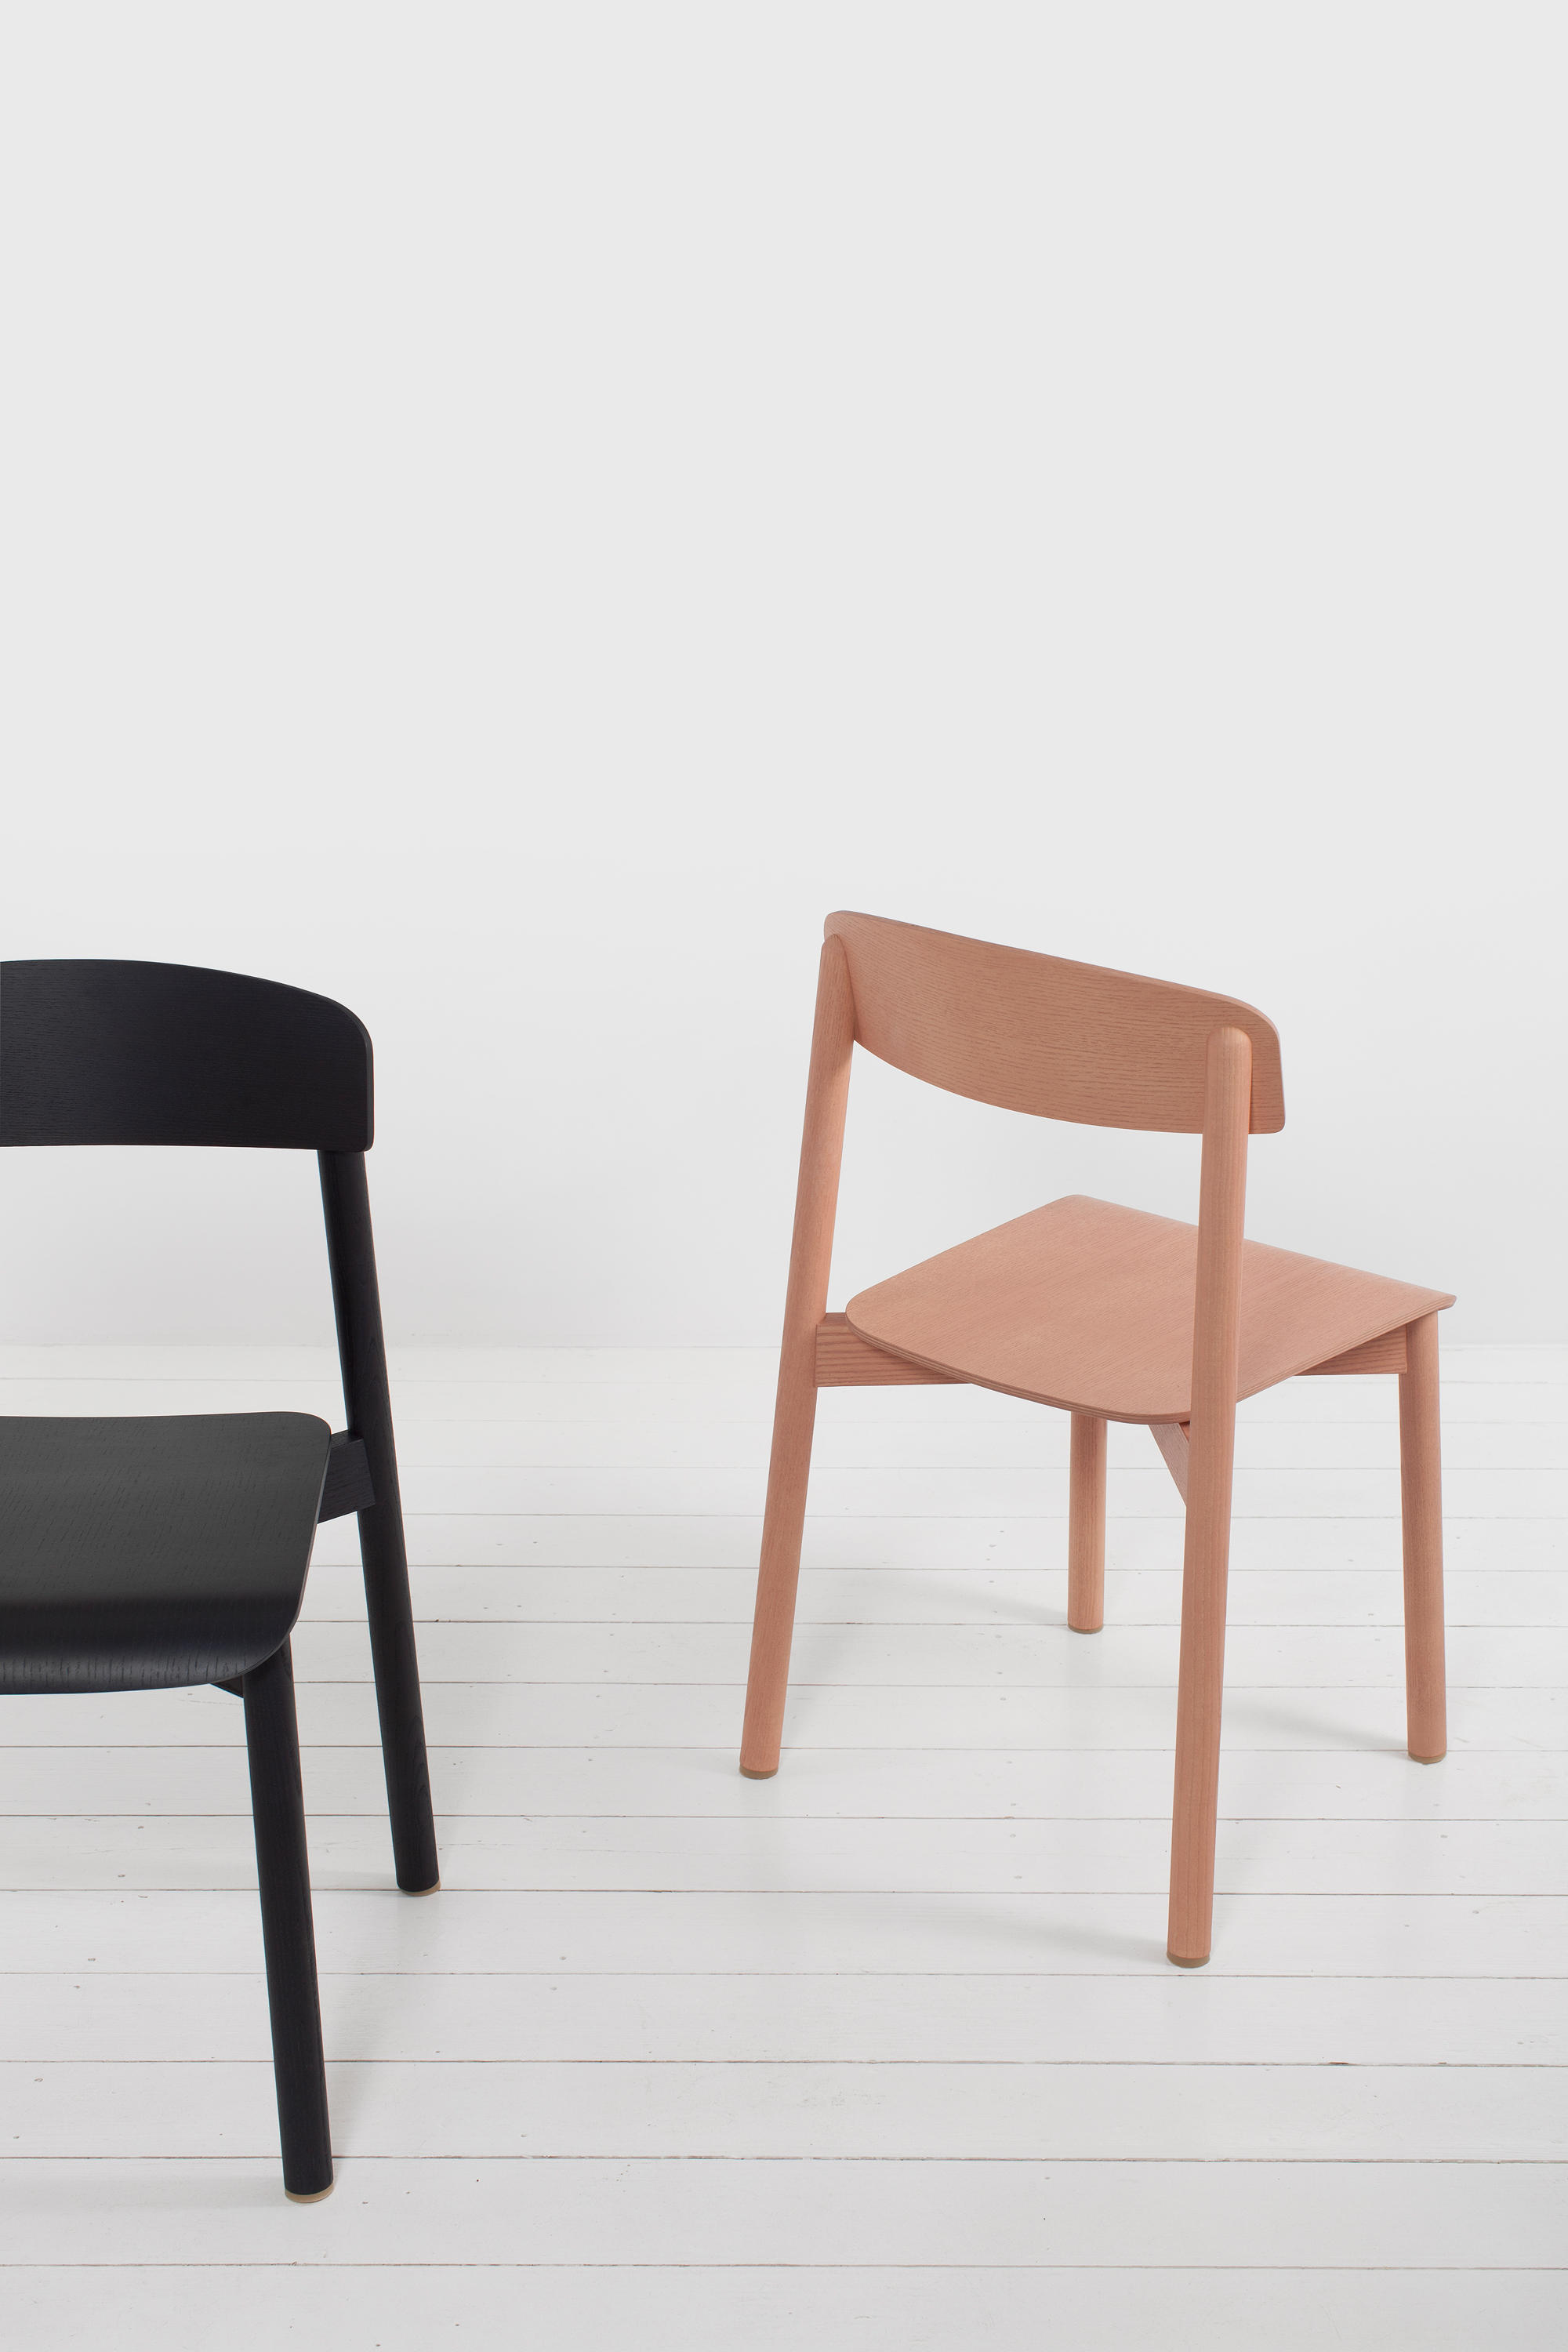 profile chair multipurpose chairs from stattmann neue moebel architonic. Black Bedroom Furniture Sets. Home Design Ideas